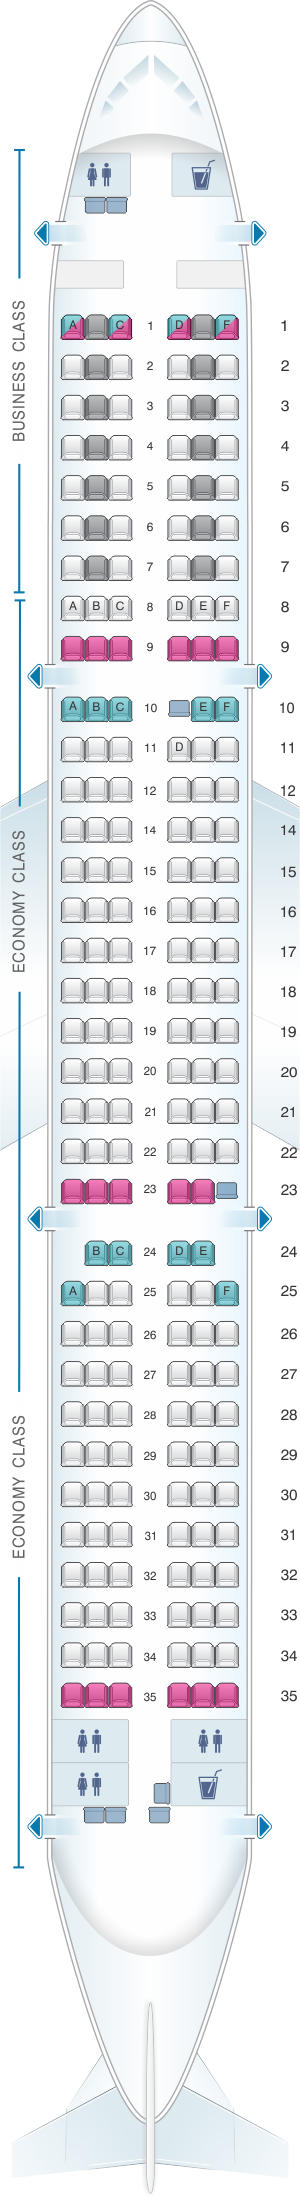 Seat map for Austrian Airlines Airbus A321 111